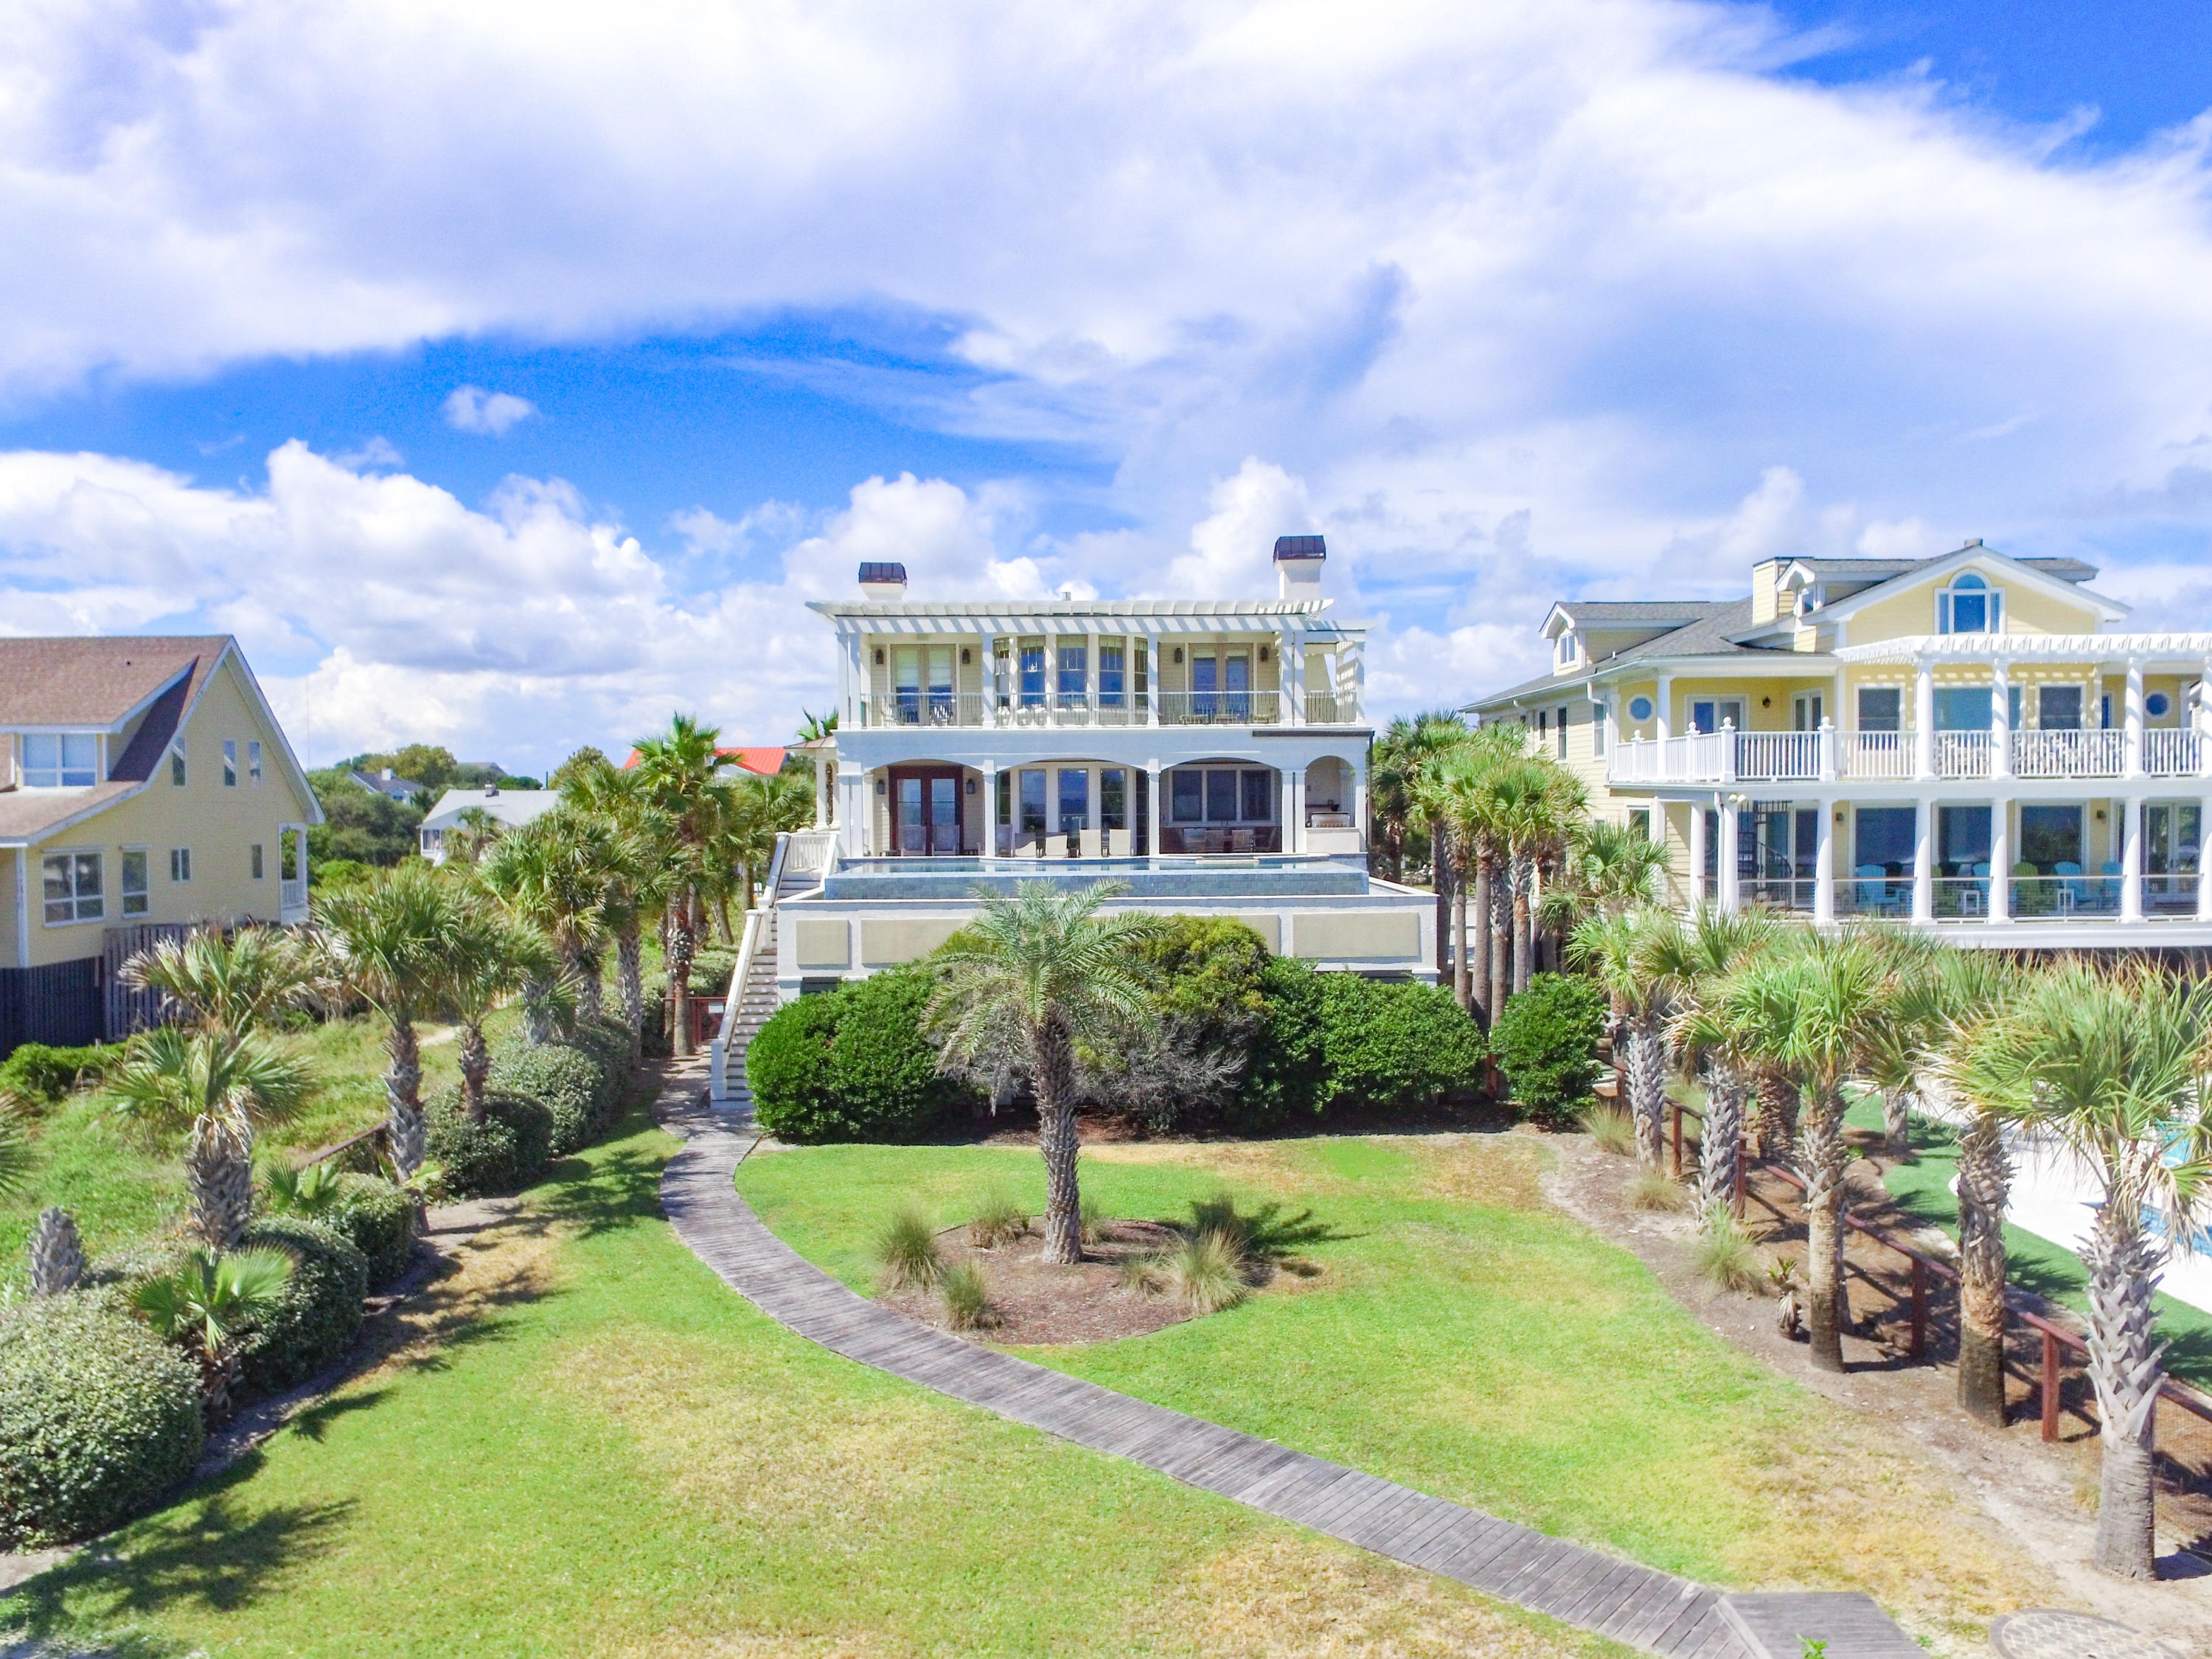 Ocean Boulevard Homes For Sale - 300 Ocean, Isle of Palms, SC - 3